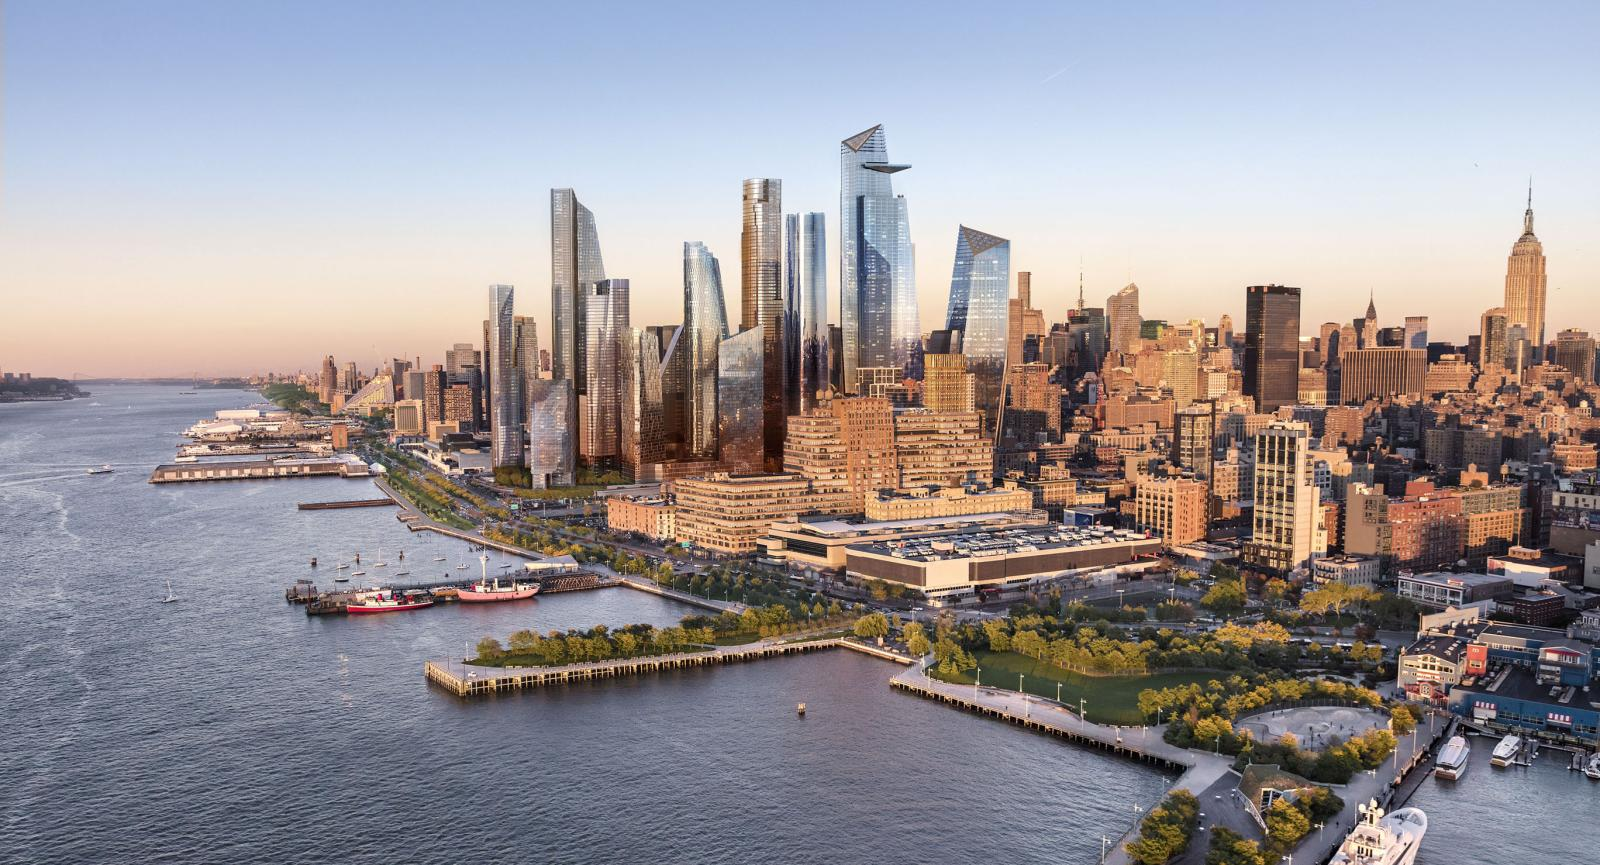 Rendering of the completed Hudson Yards development